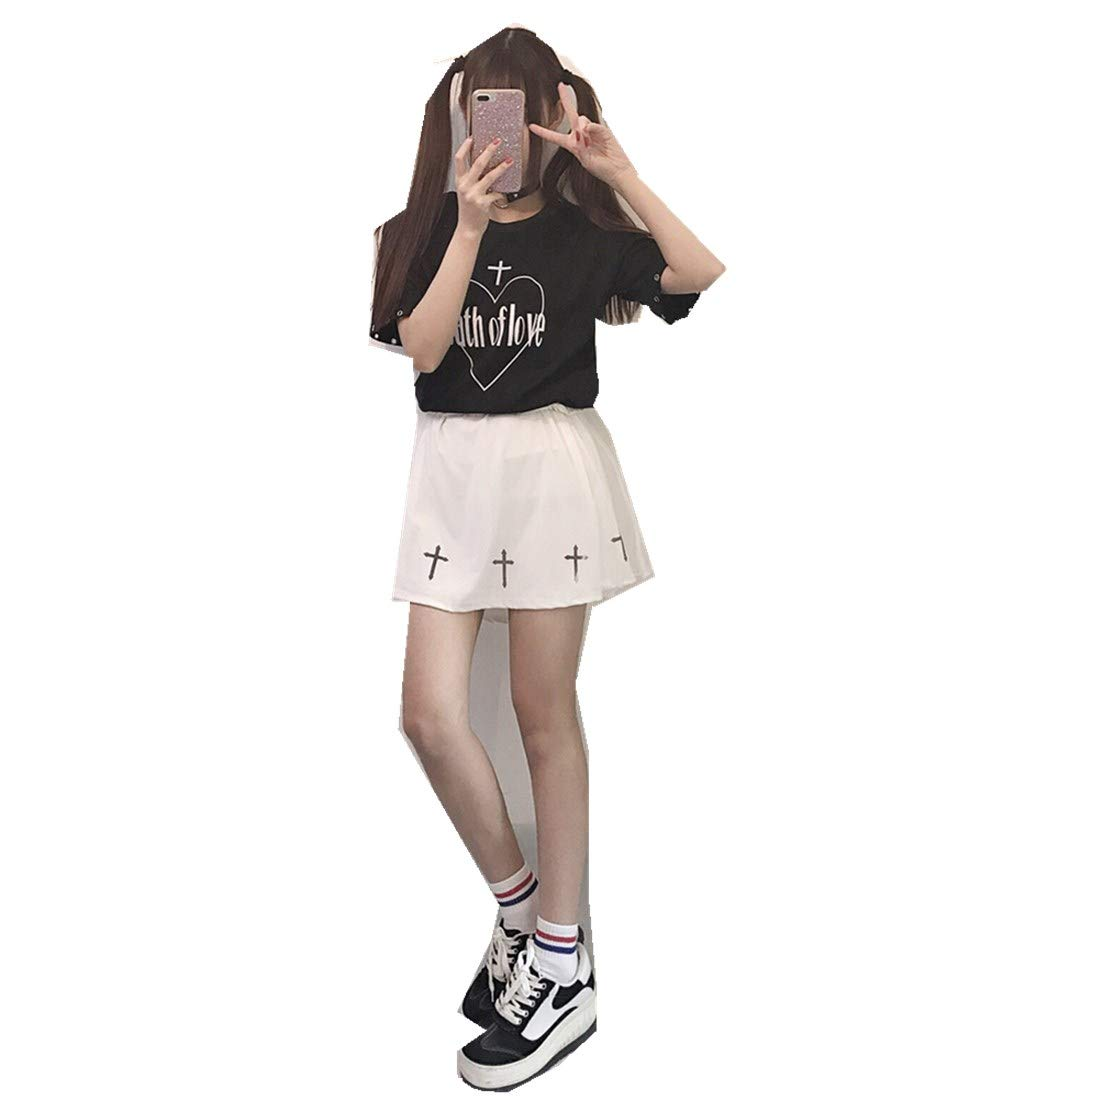 Japanese Soft Sister Love Cross Strap Short-Sleeved T-Shirt + Skirt Two-Piece